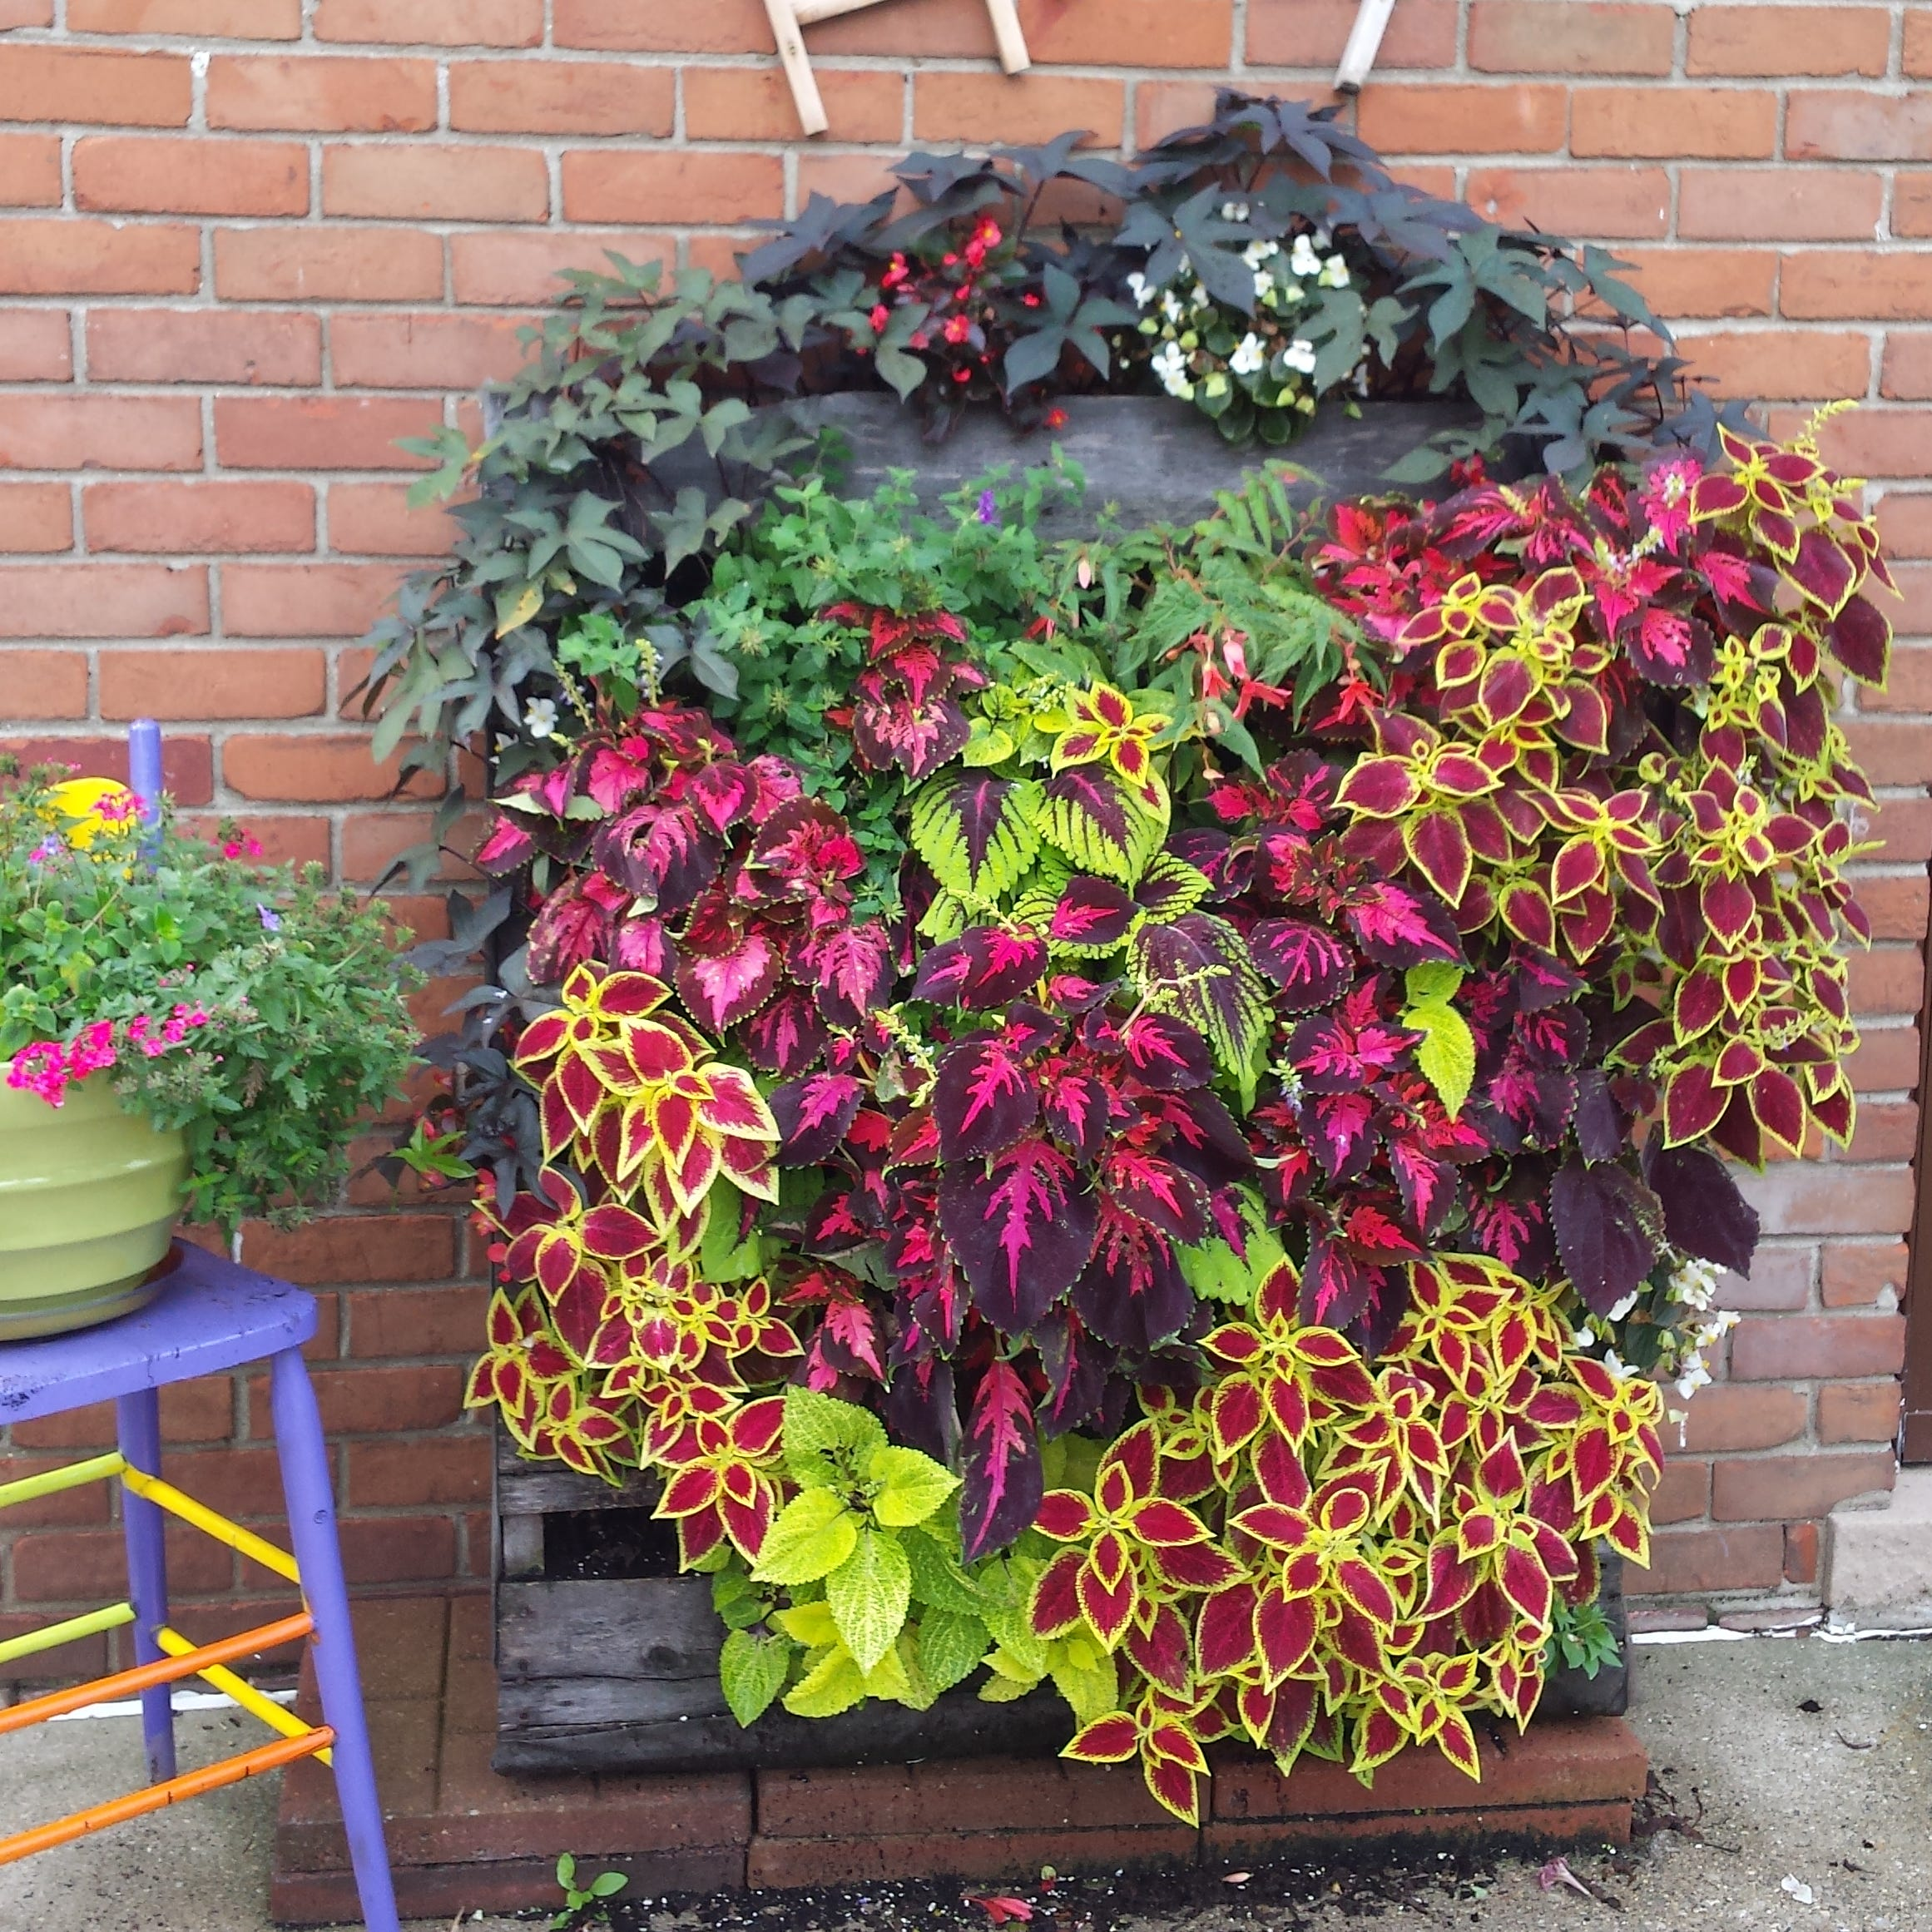 'Coleus Pallet' is this week's garden photo winner